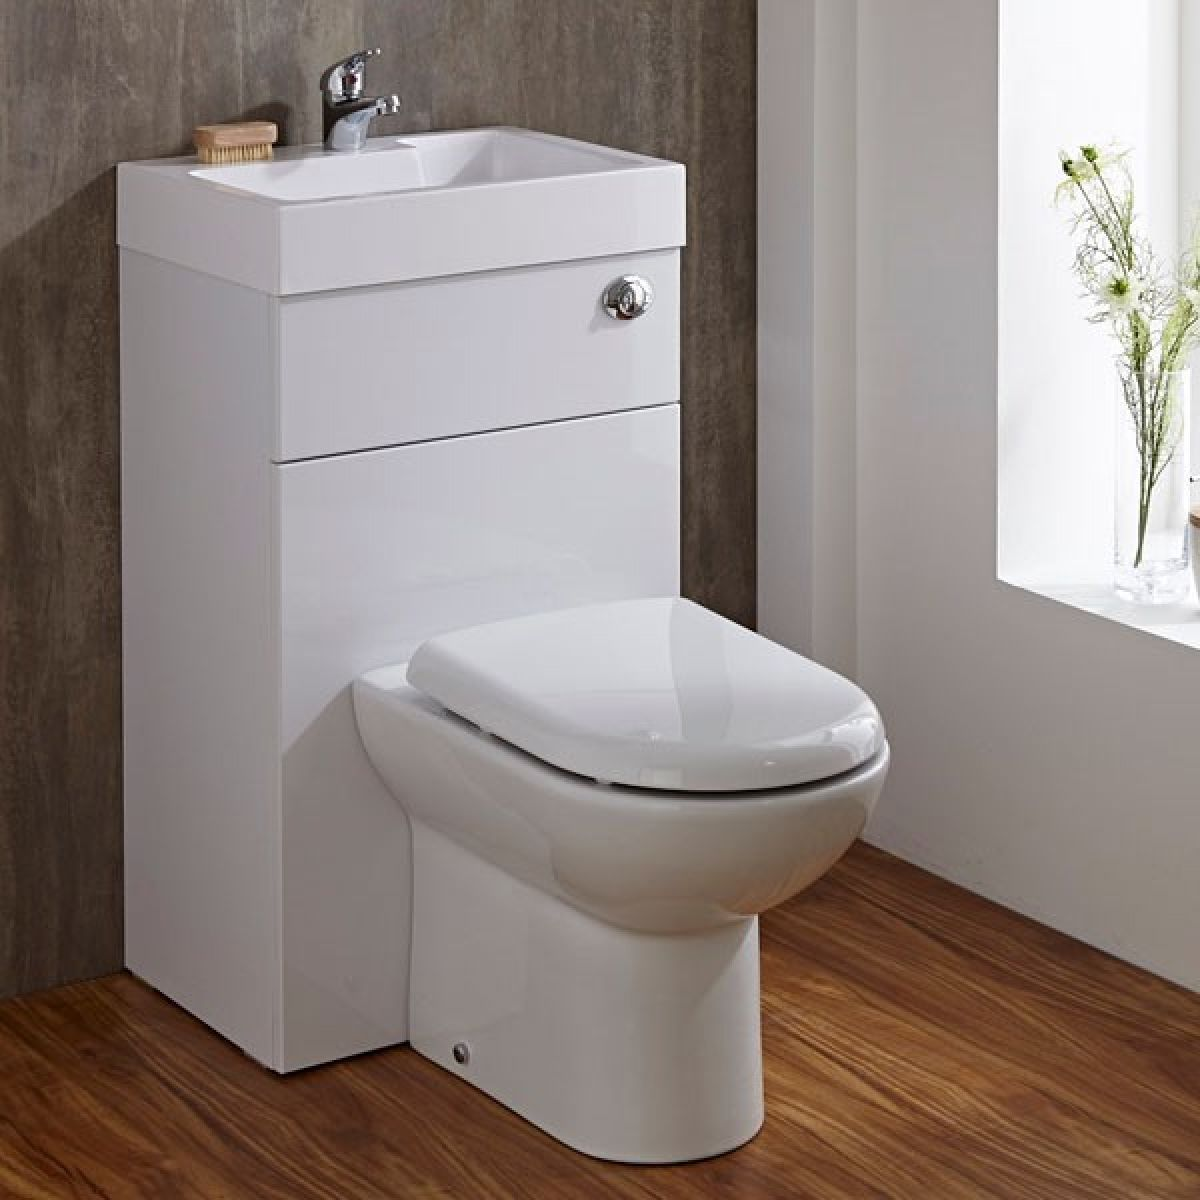 Toilet with integrated basin in room